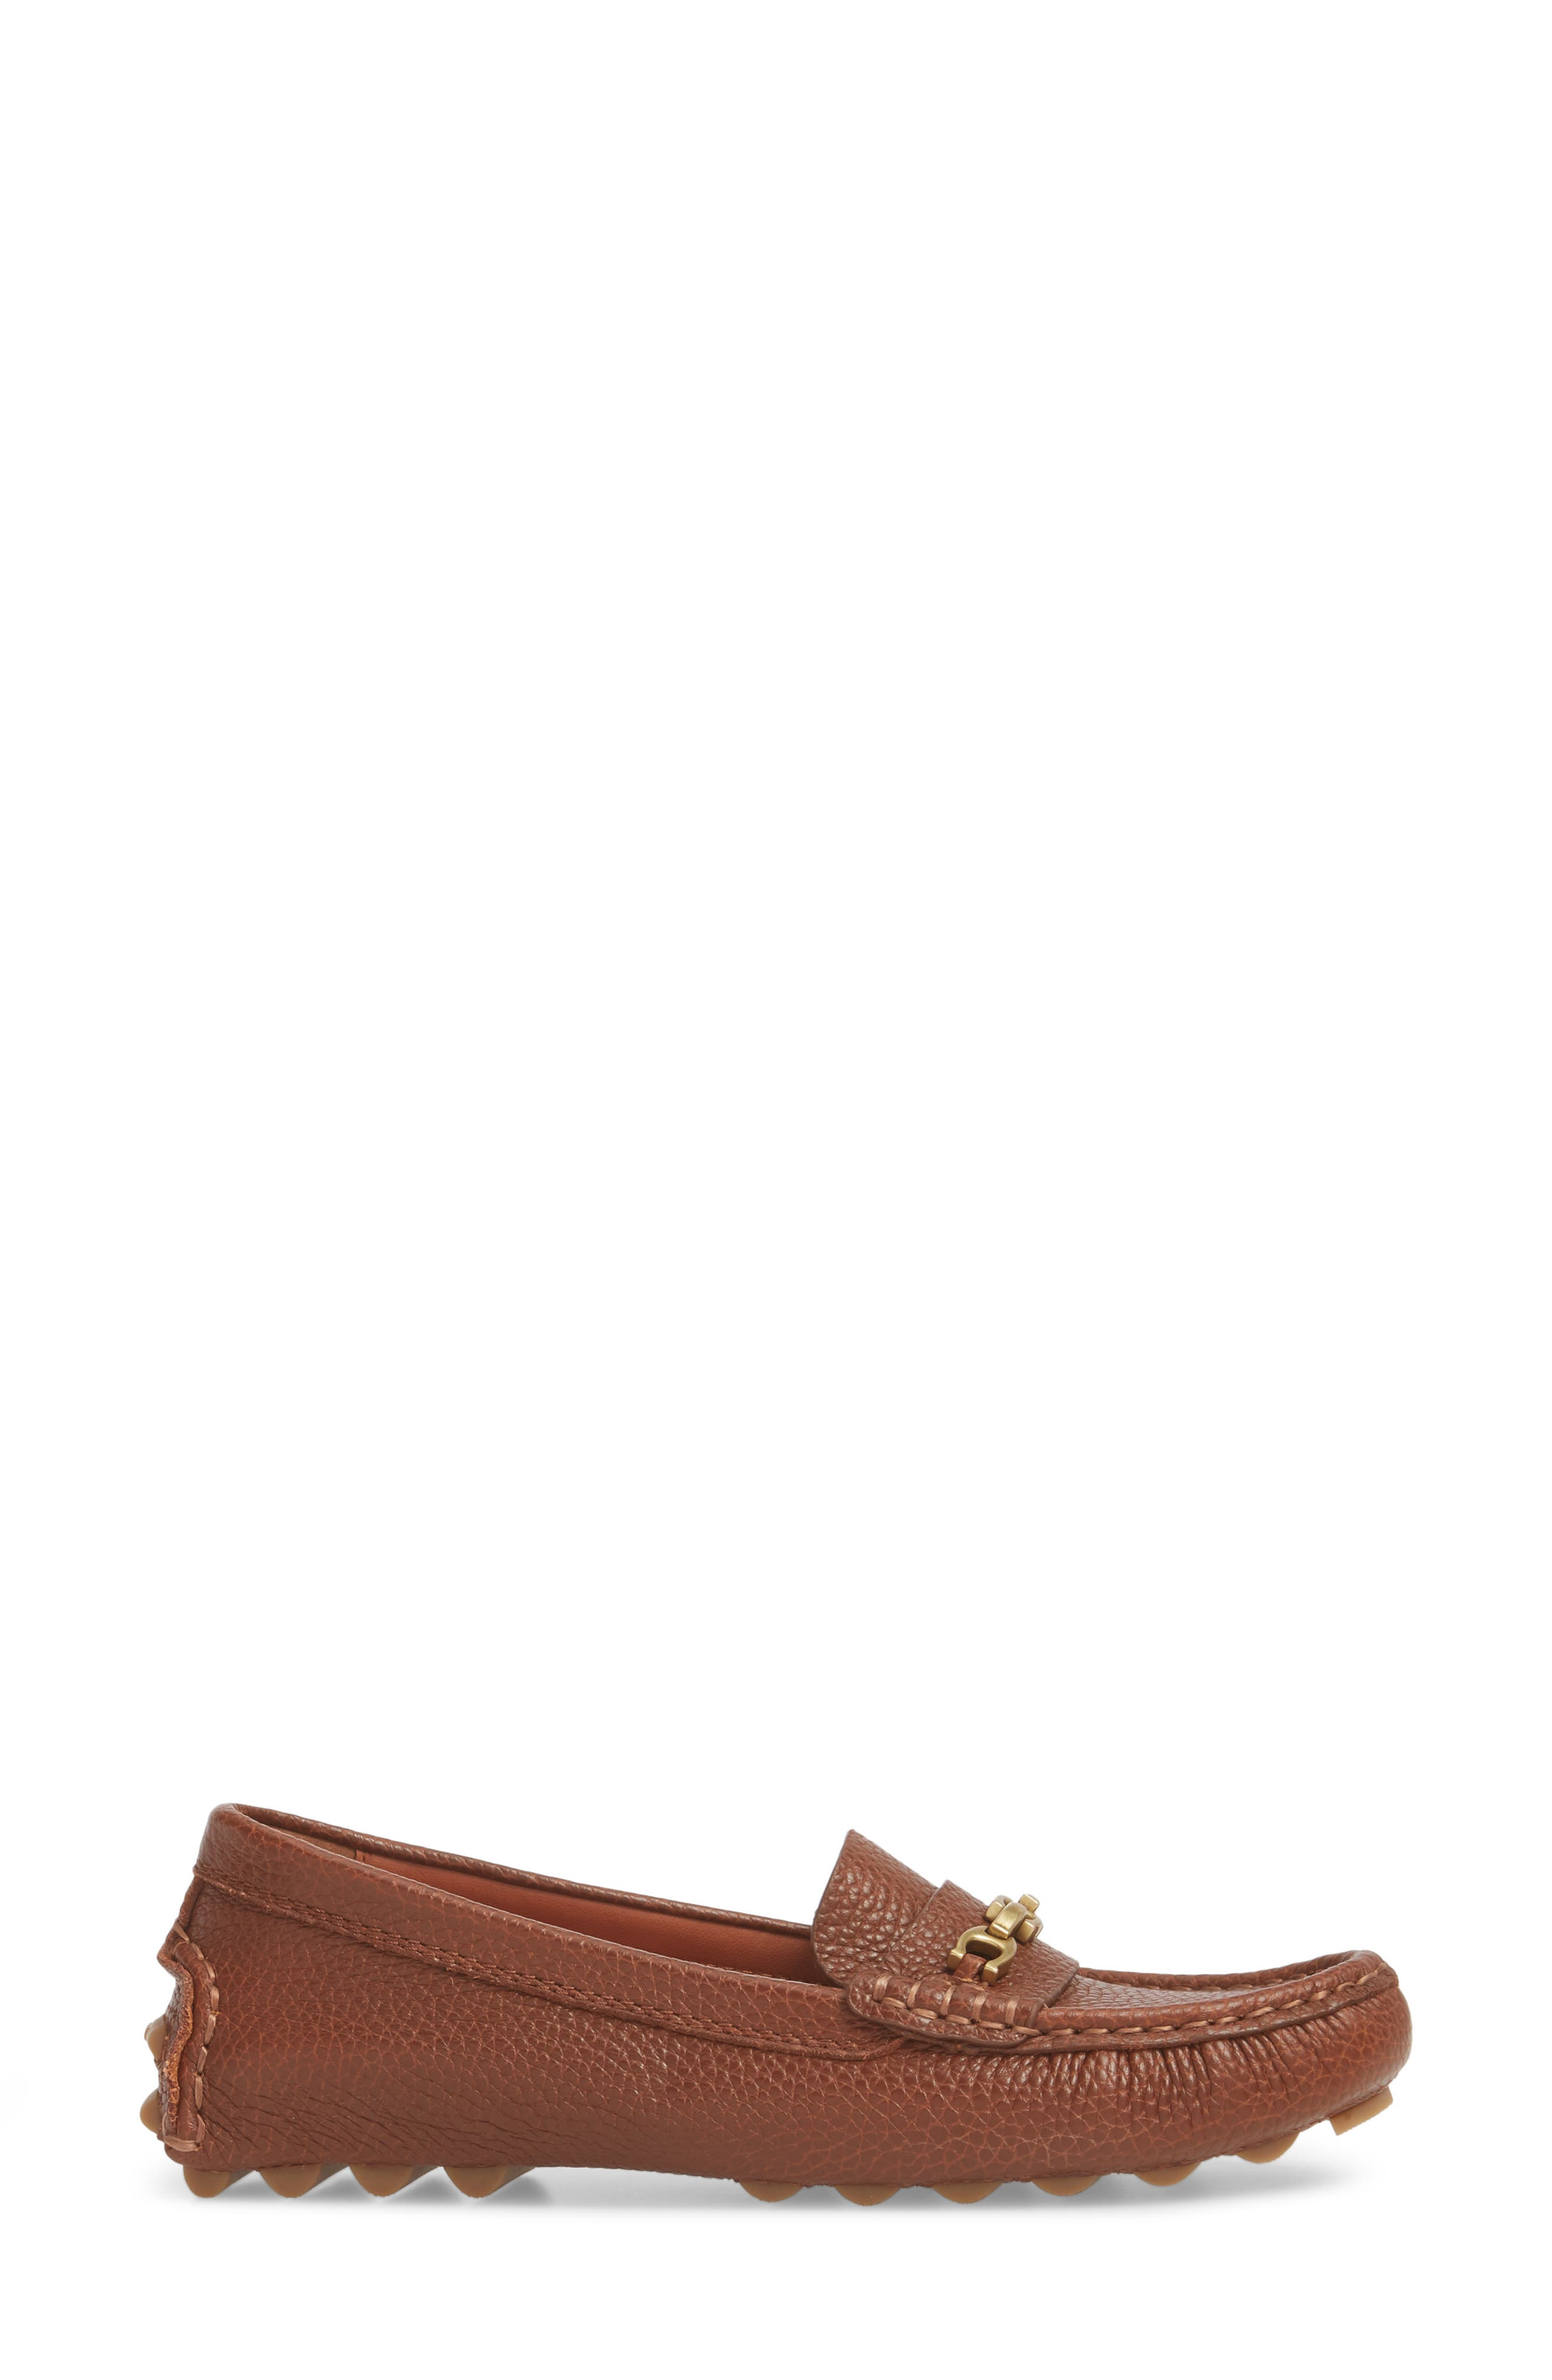 Crosby Driver Loafer,                             Alternate thumbnail 3, color,                             LION PEBBLED LEATHER